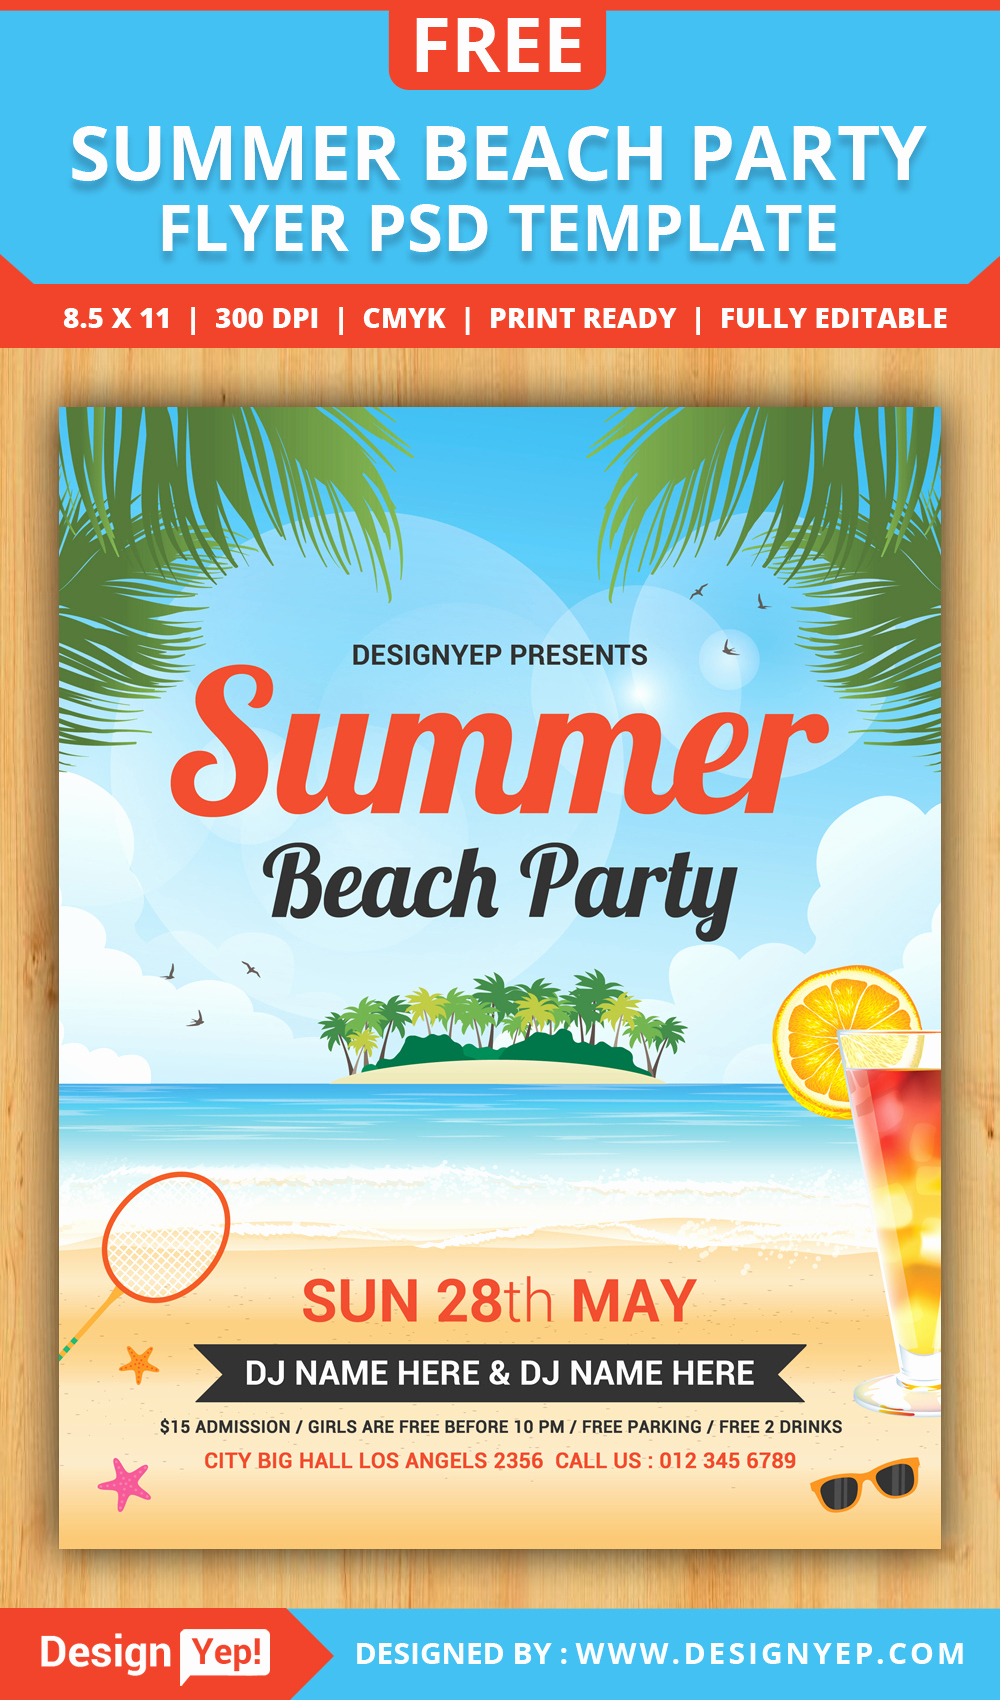 Free Download Flyer Template New Free Summer Beach Party Flyer Psd Template Designyep